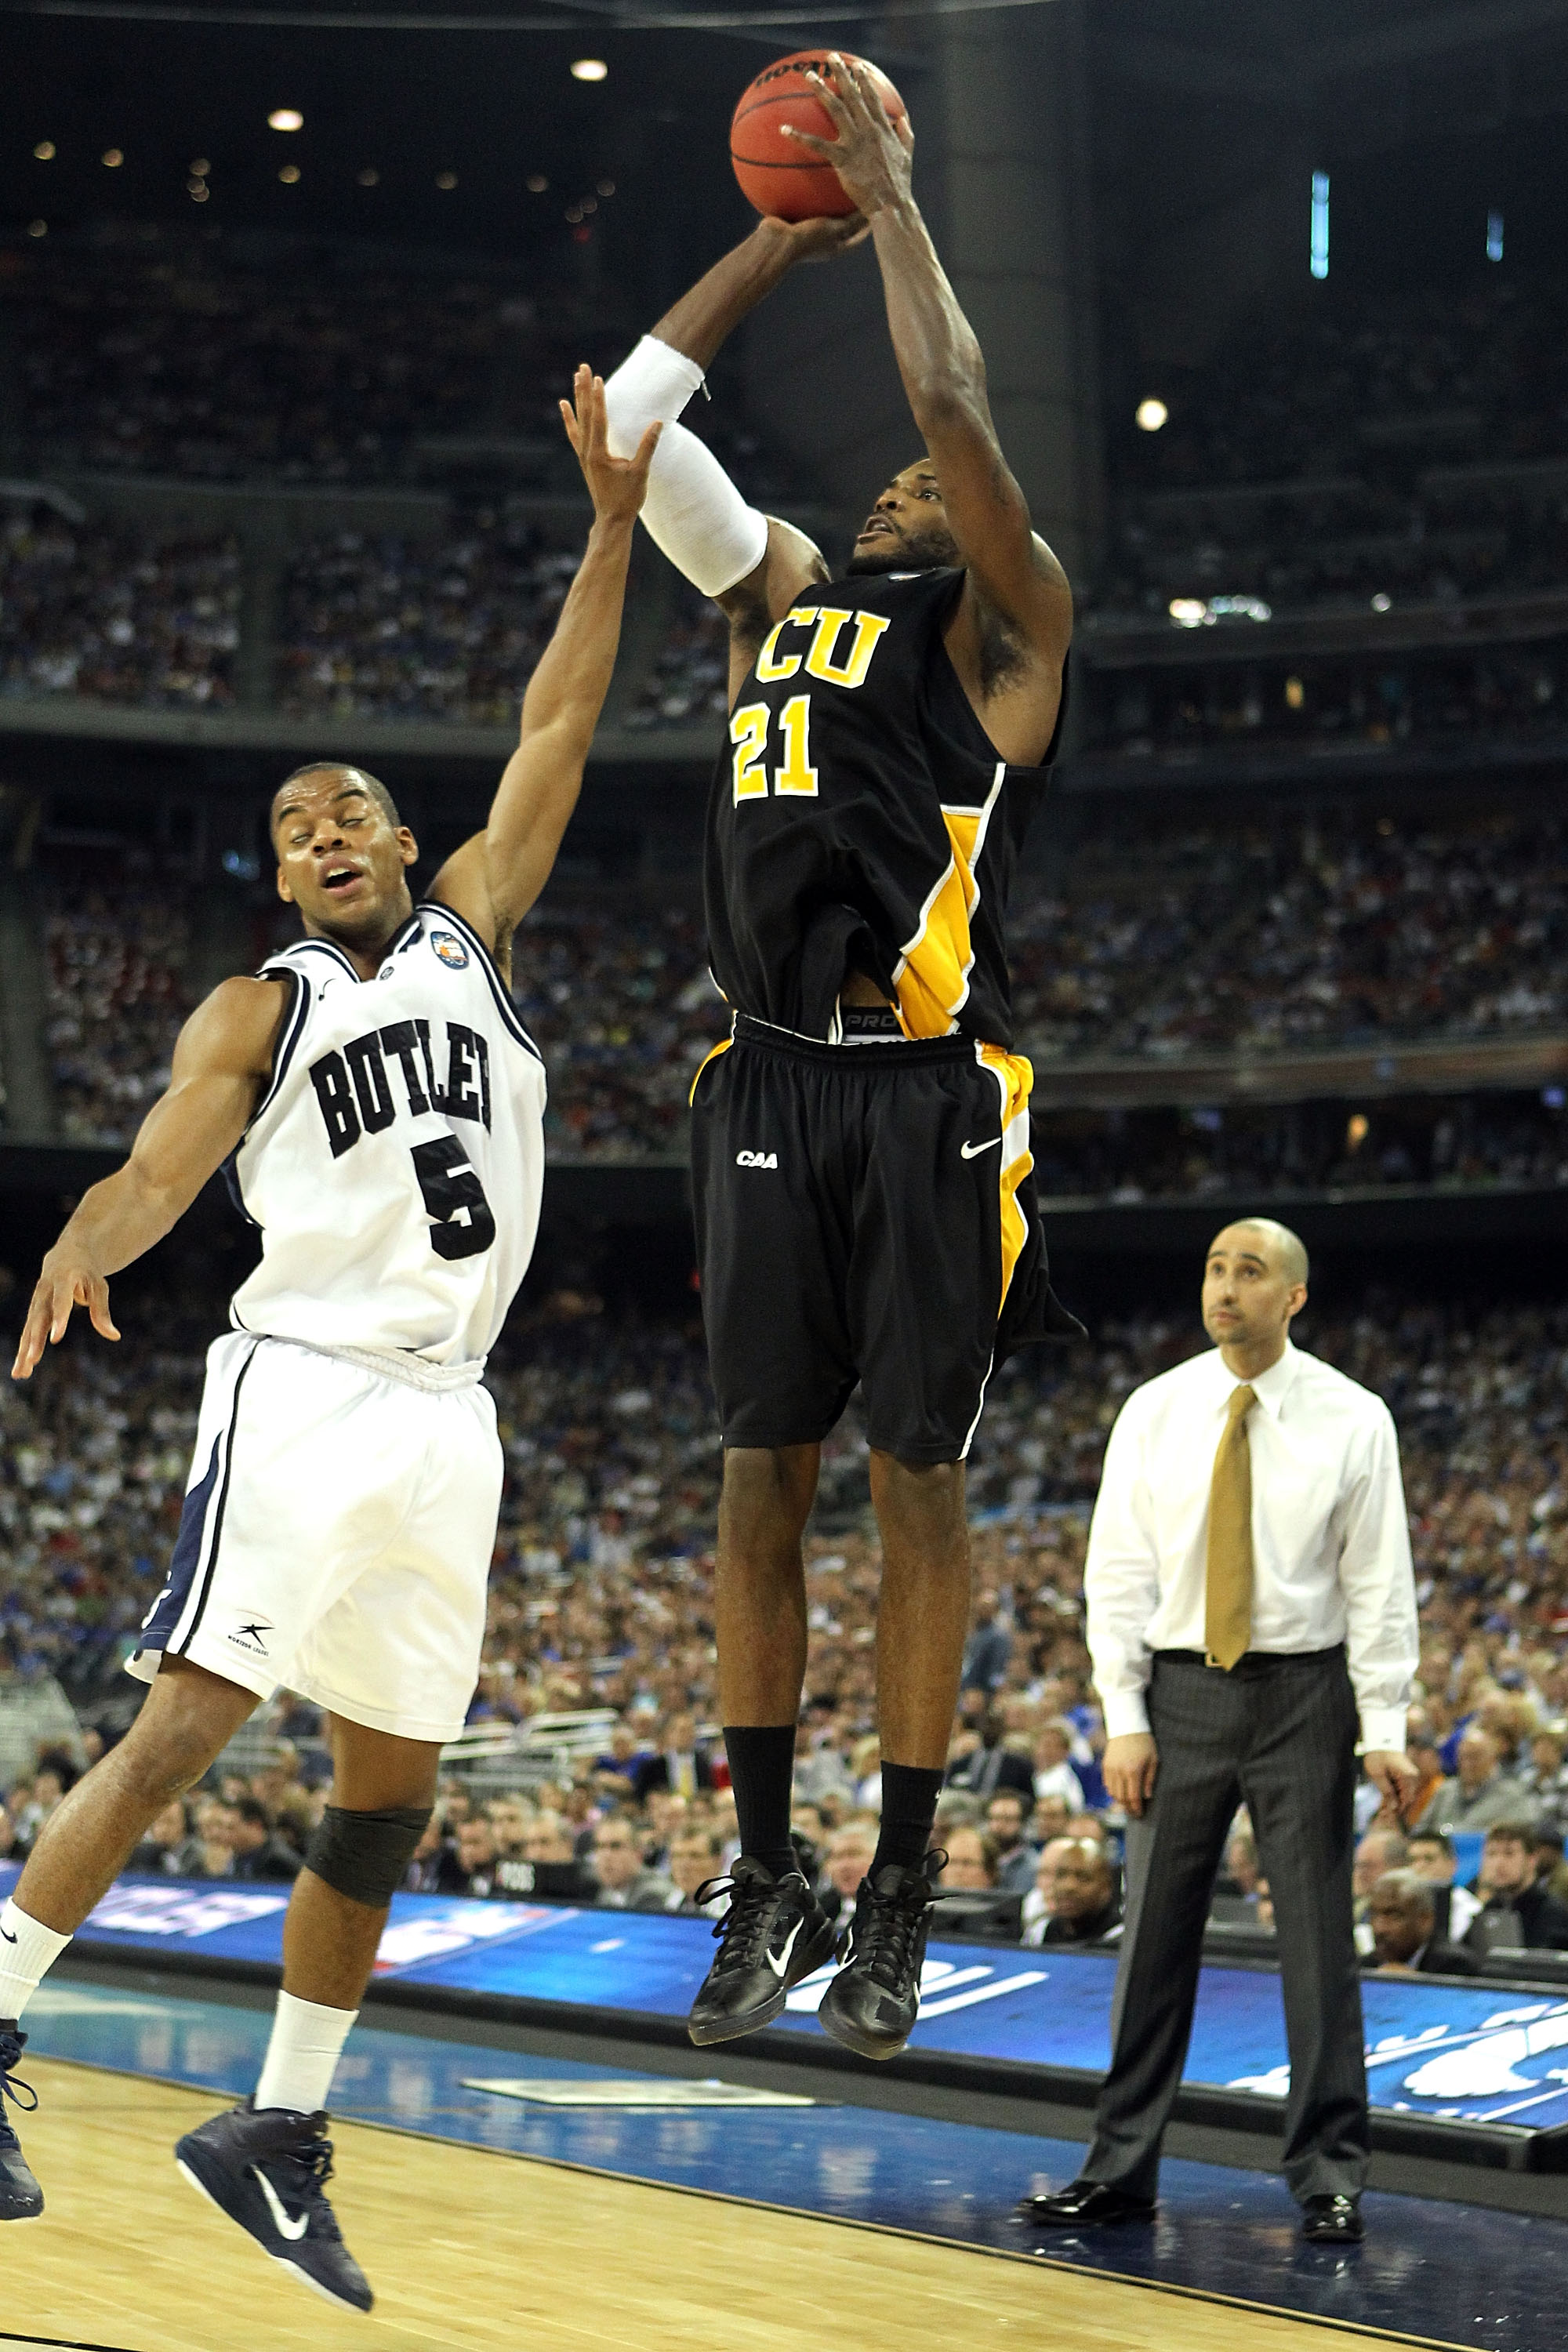 HOUSTON, TX - APRIL 02:  Jamie Skeen #21 of the Virginia Commonwealth Rams shoots the ball over Ronald Nored #5 of the Butler Bulldogs during the National Semifinal game of the 2011 NCAA Division I Men's Basketball Championship at Reliant Stadium on April